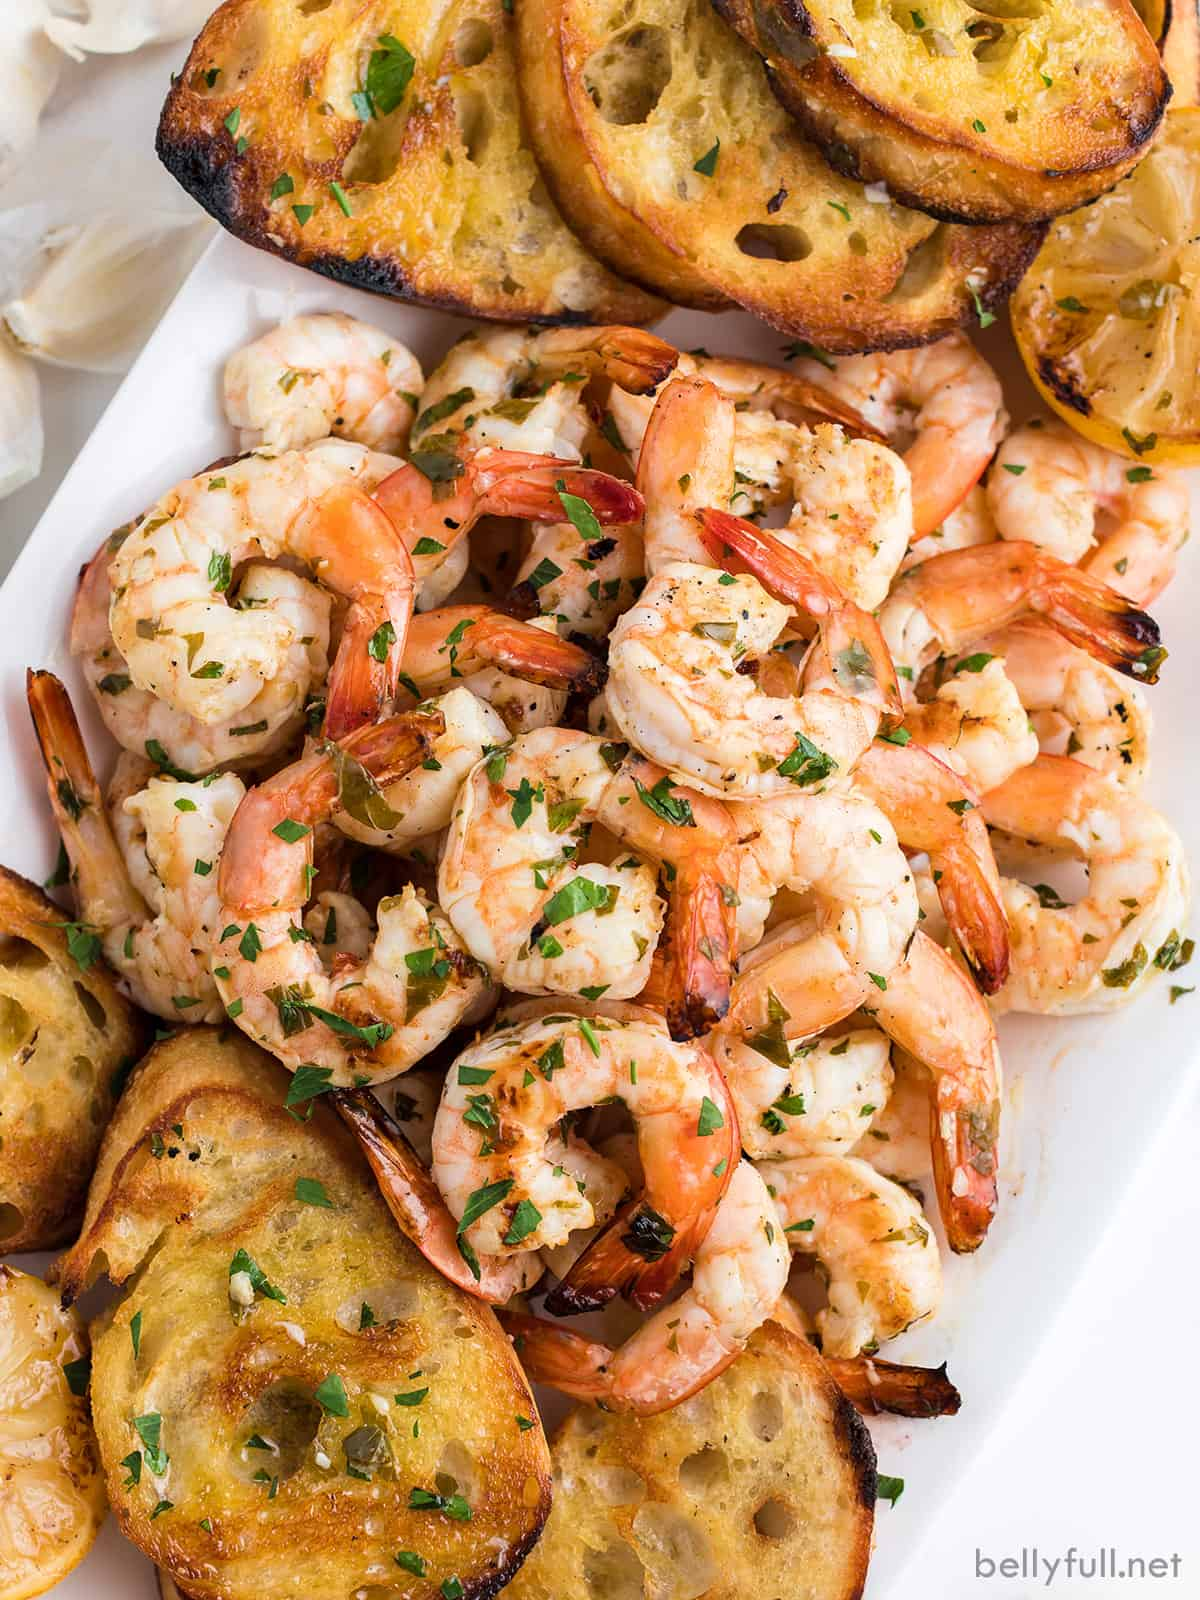 Grilled shrimp scampi on a serving tray with baguette slices